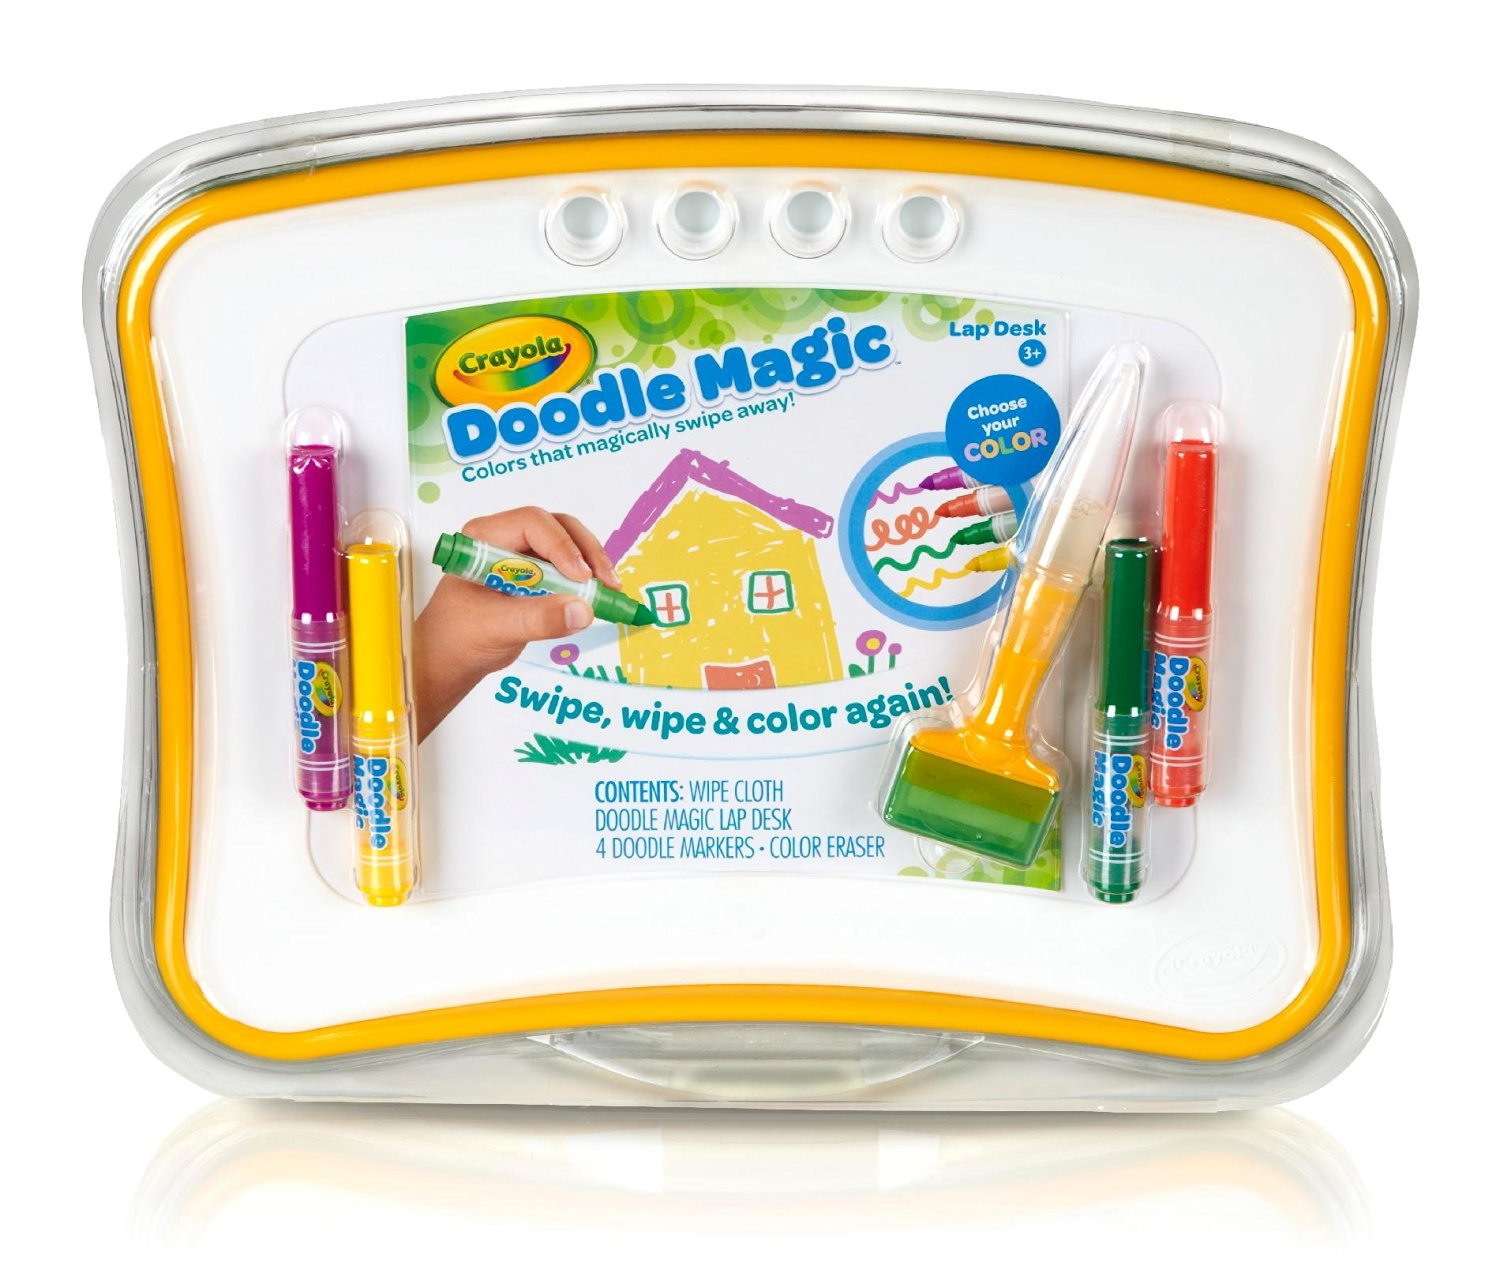 Awesome Crayola Doodle Magic Lap Desk